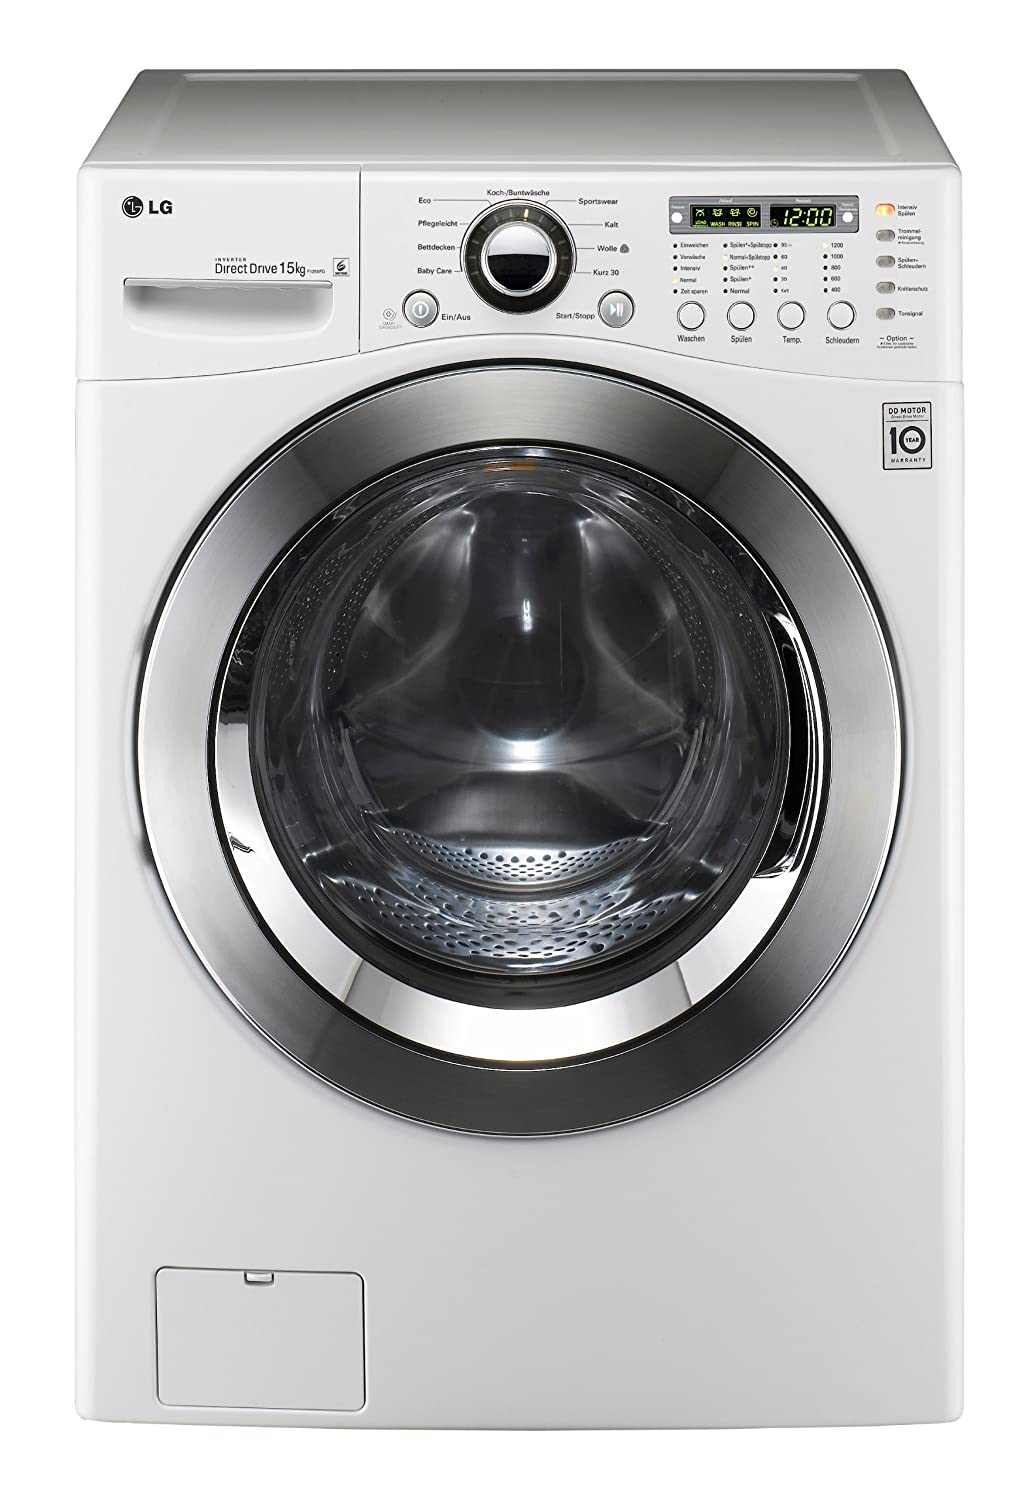 Lovely Machine A Laver 15 Kg #13: Wonderful Machine A Laver 15 Kg Lg #7: LG F1255FD Washing Machine, 15 Kg,  White: Amazon.co.uk: Business, Industry U0026 Science